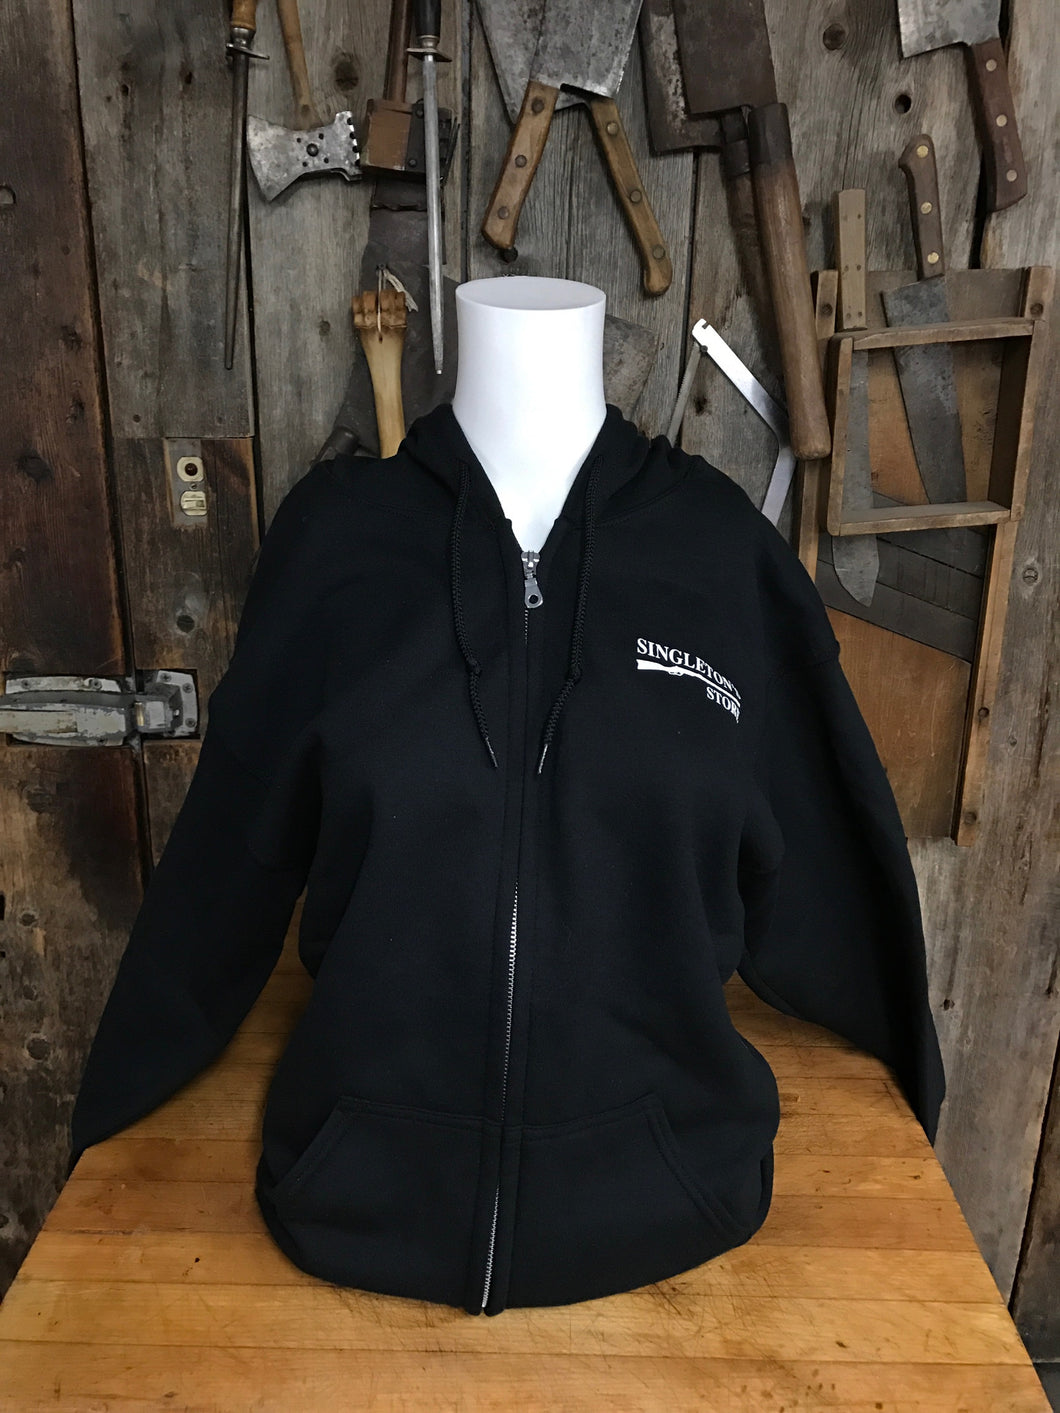 Singleton's General Store Black Zip Up Hoodie